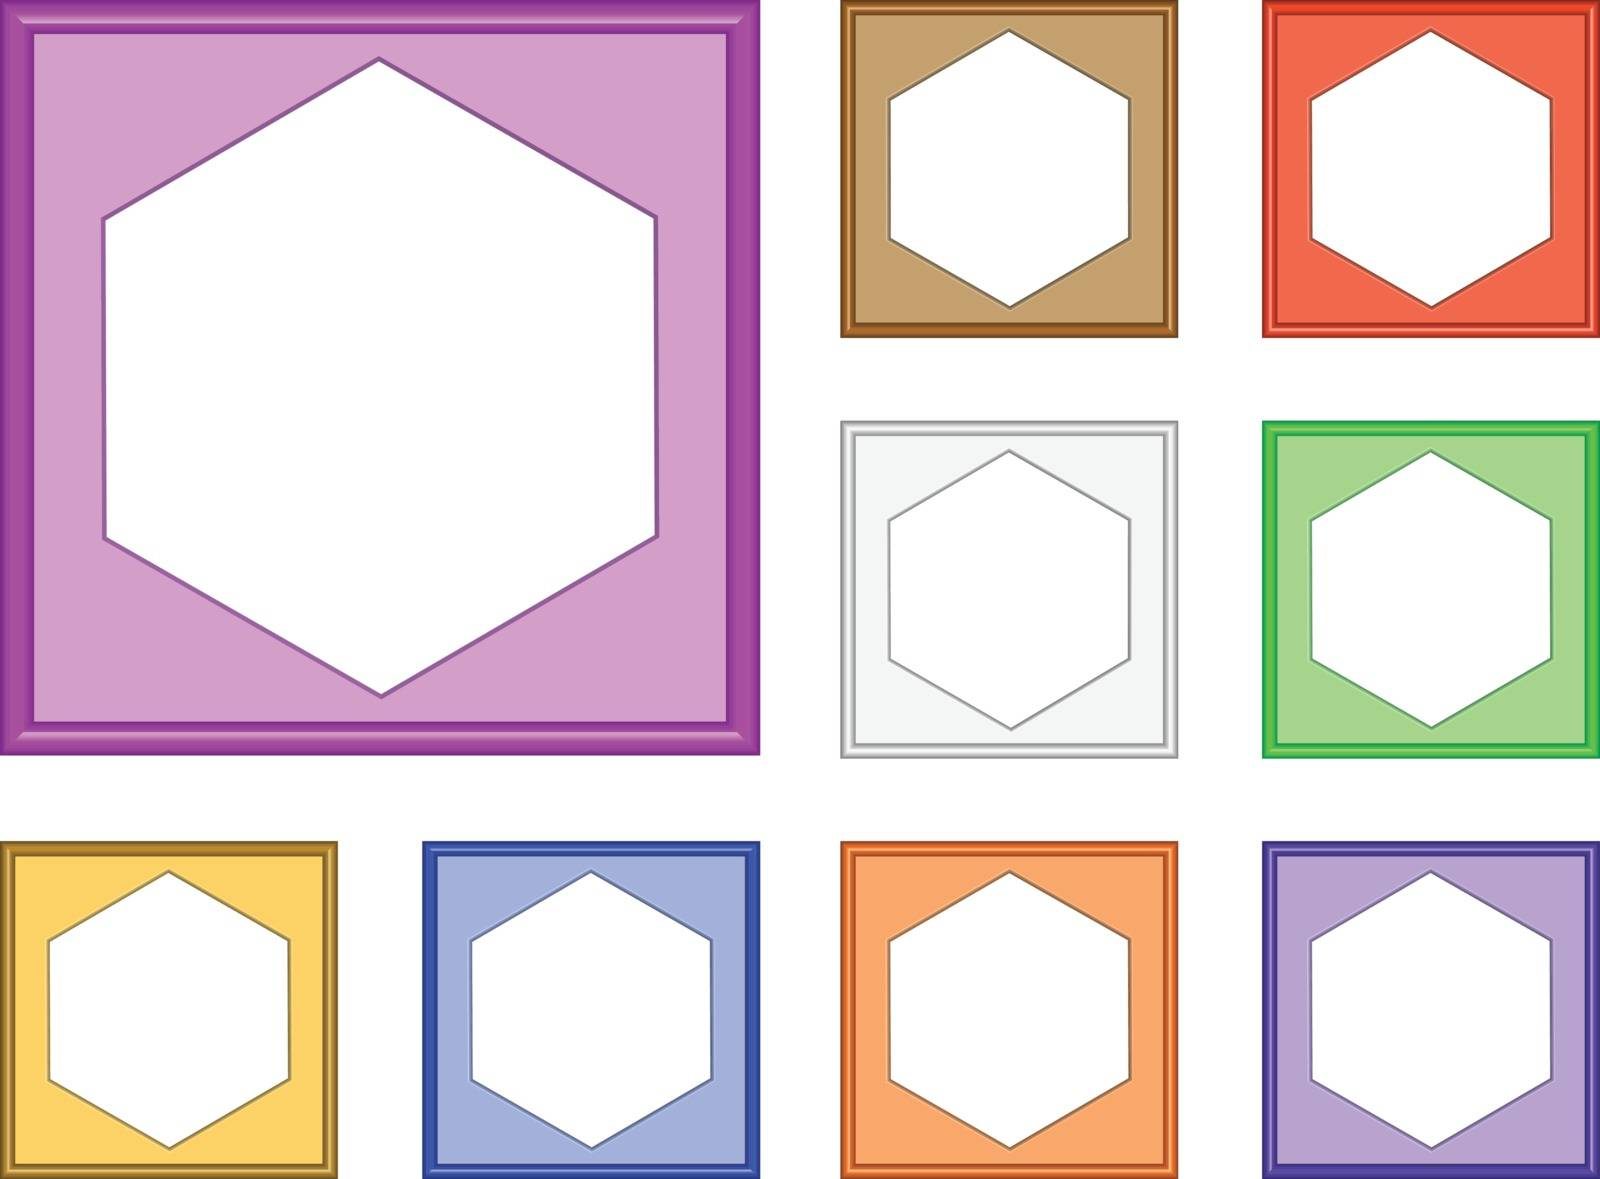 colorful modern style of square frame with hexagon inside for collect picture, gallery, 3d vector